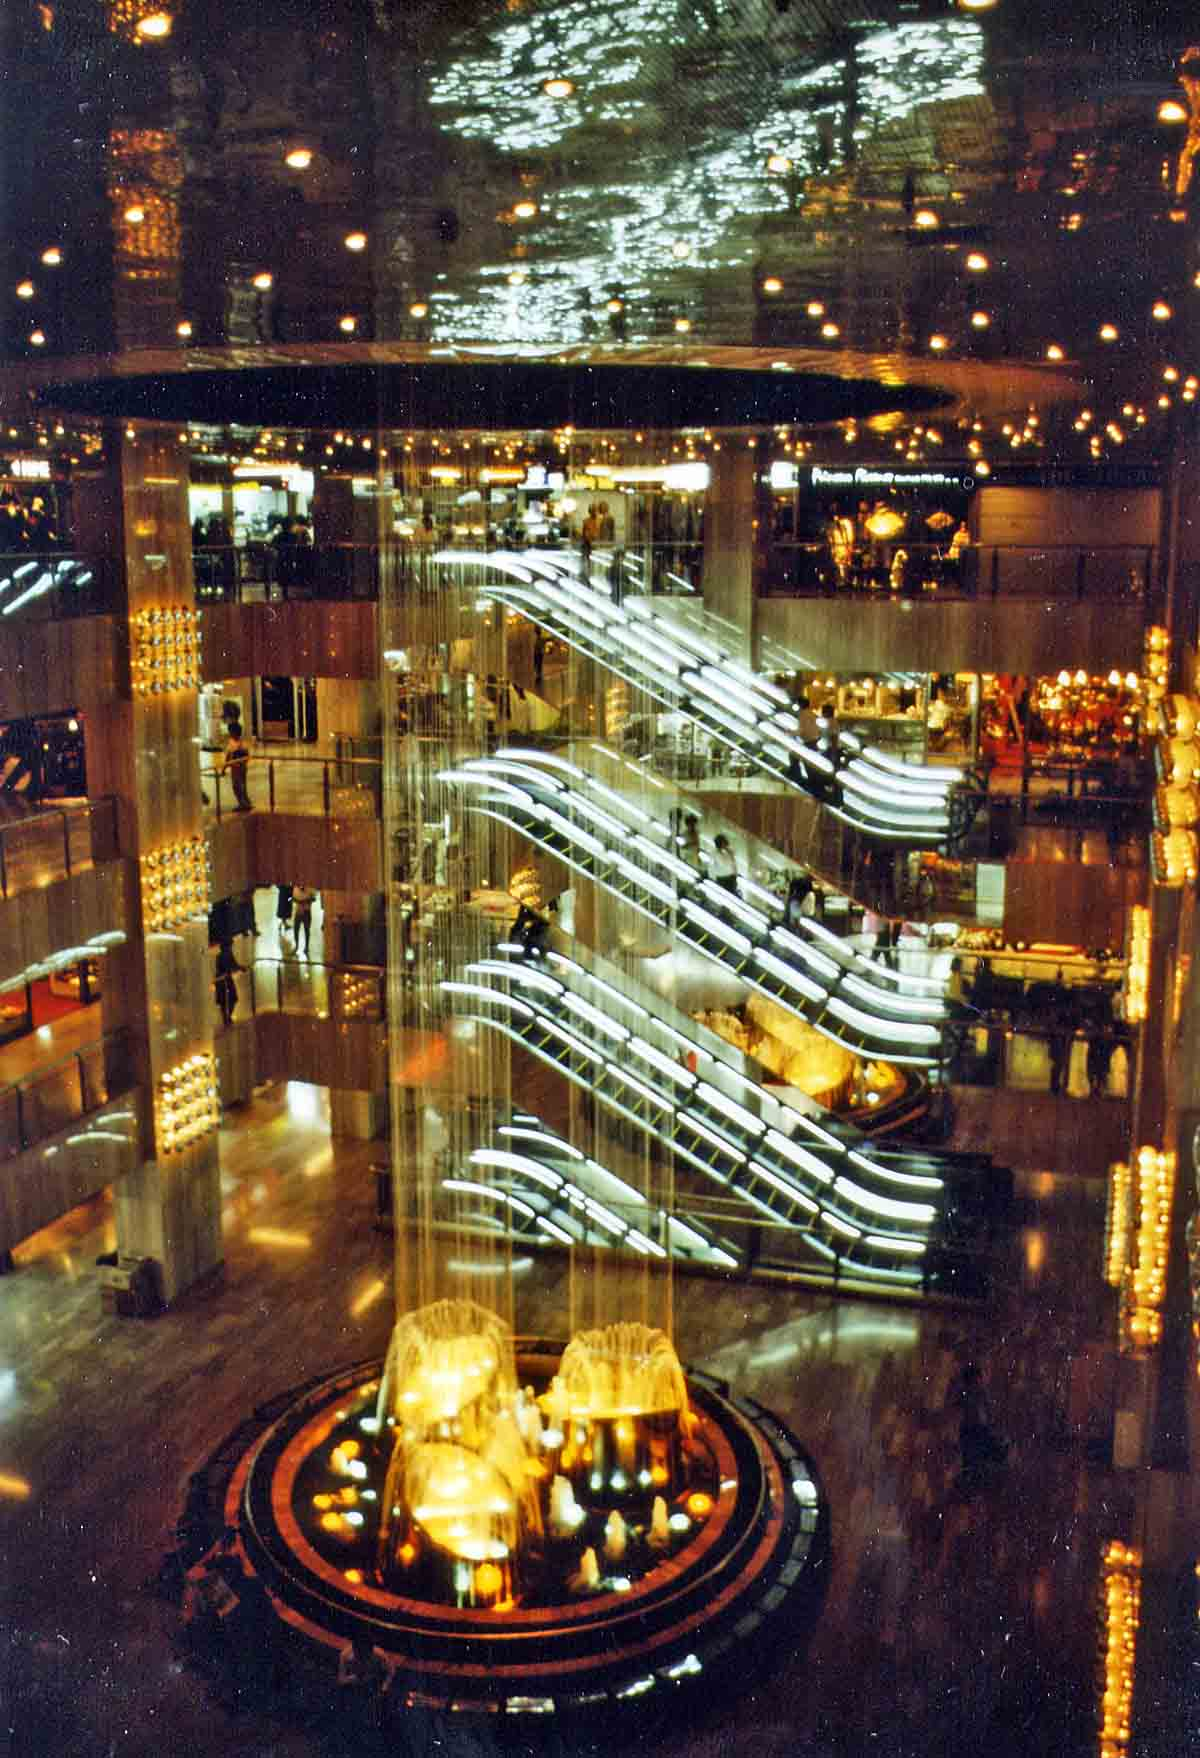 shopping center in Singapore